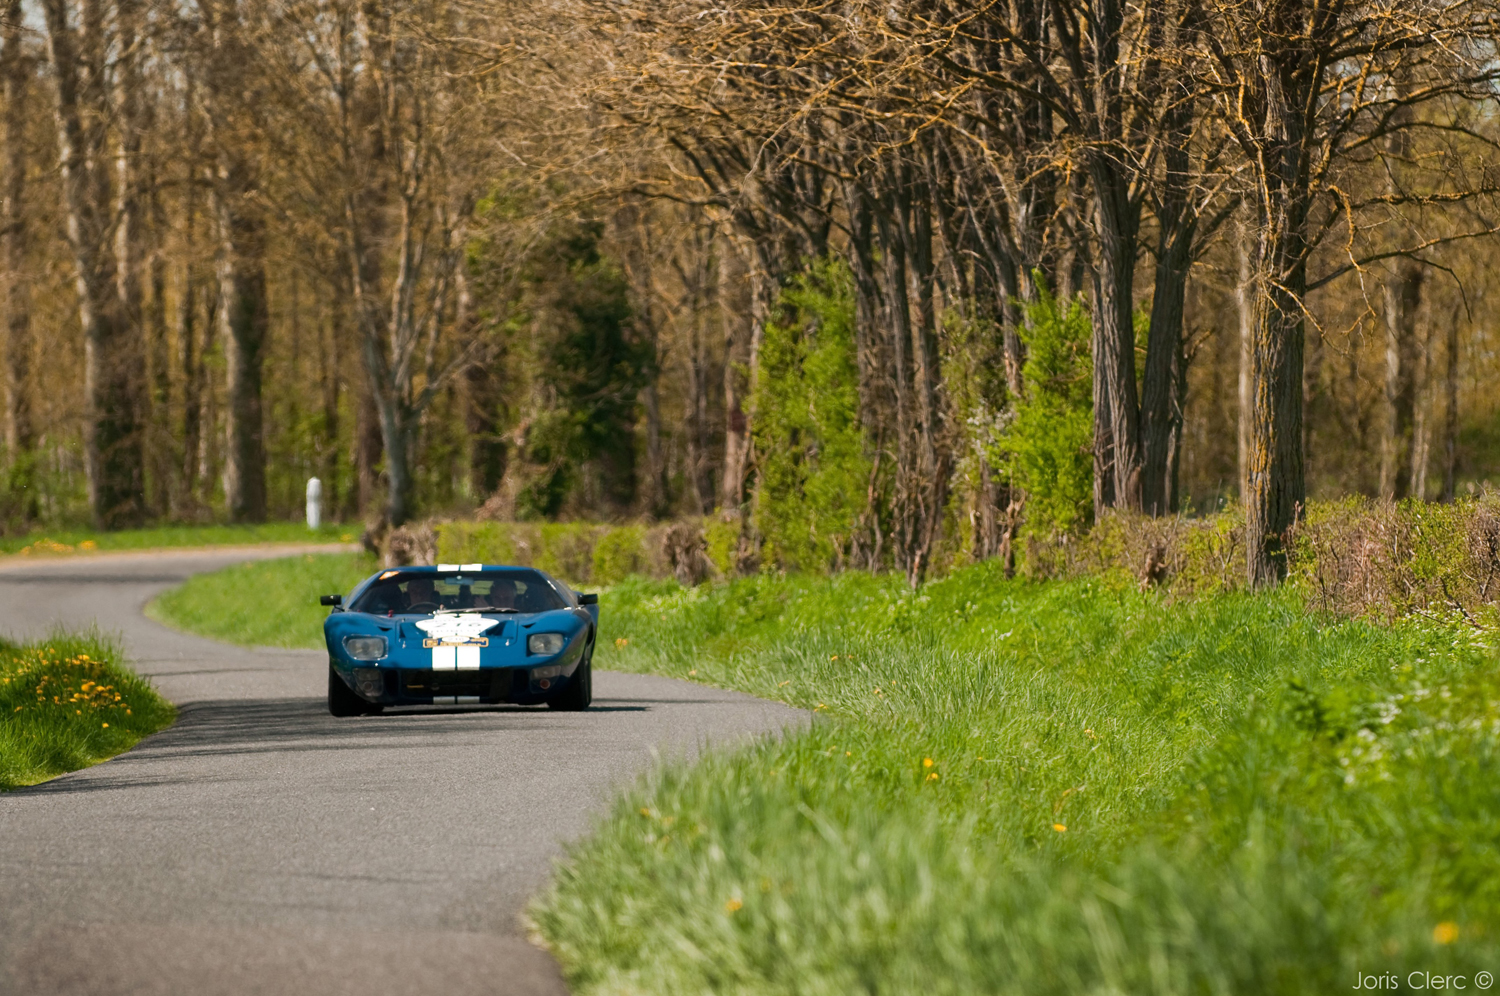 Tour Auto 2013 Optic 2000 – Joris Clerc – Ford GT 40